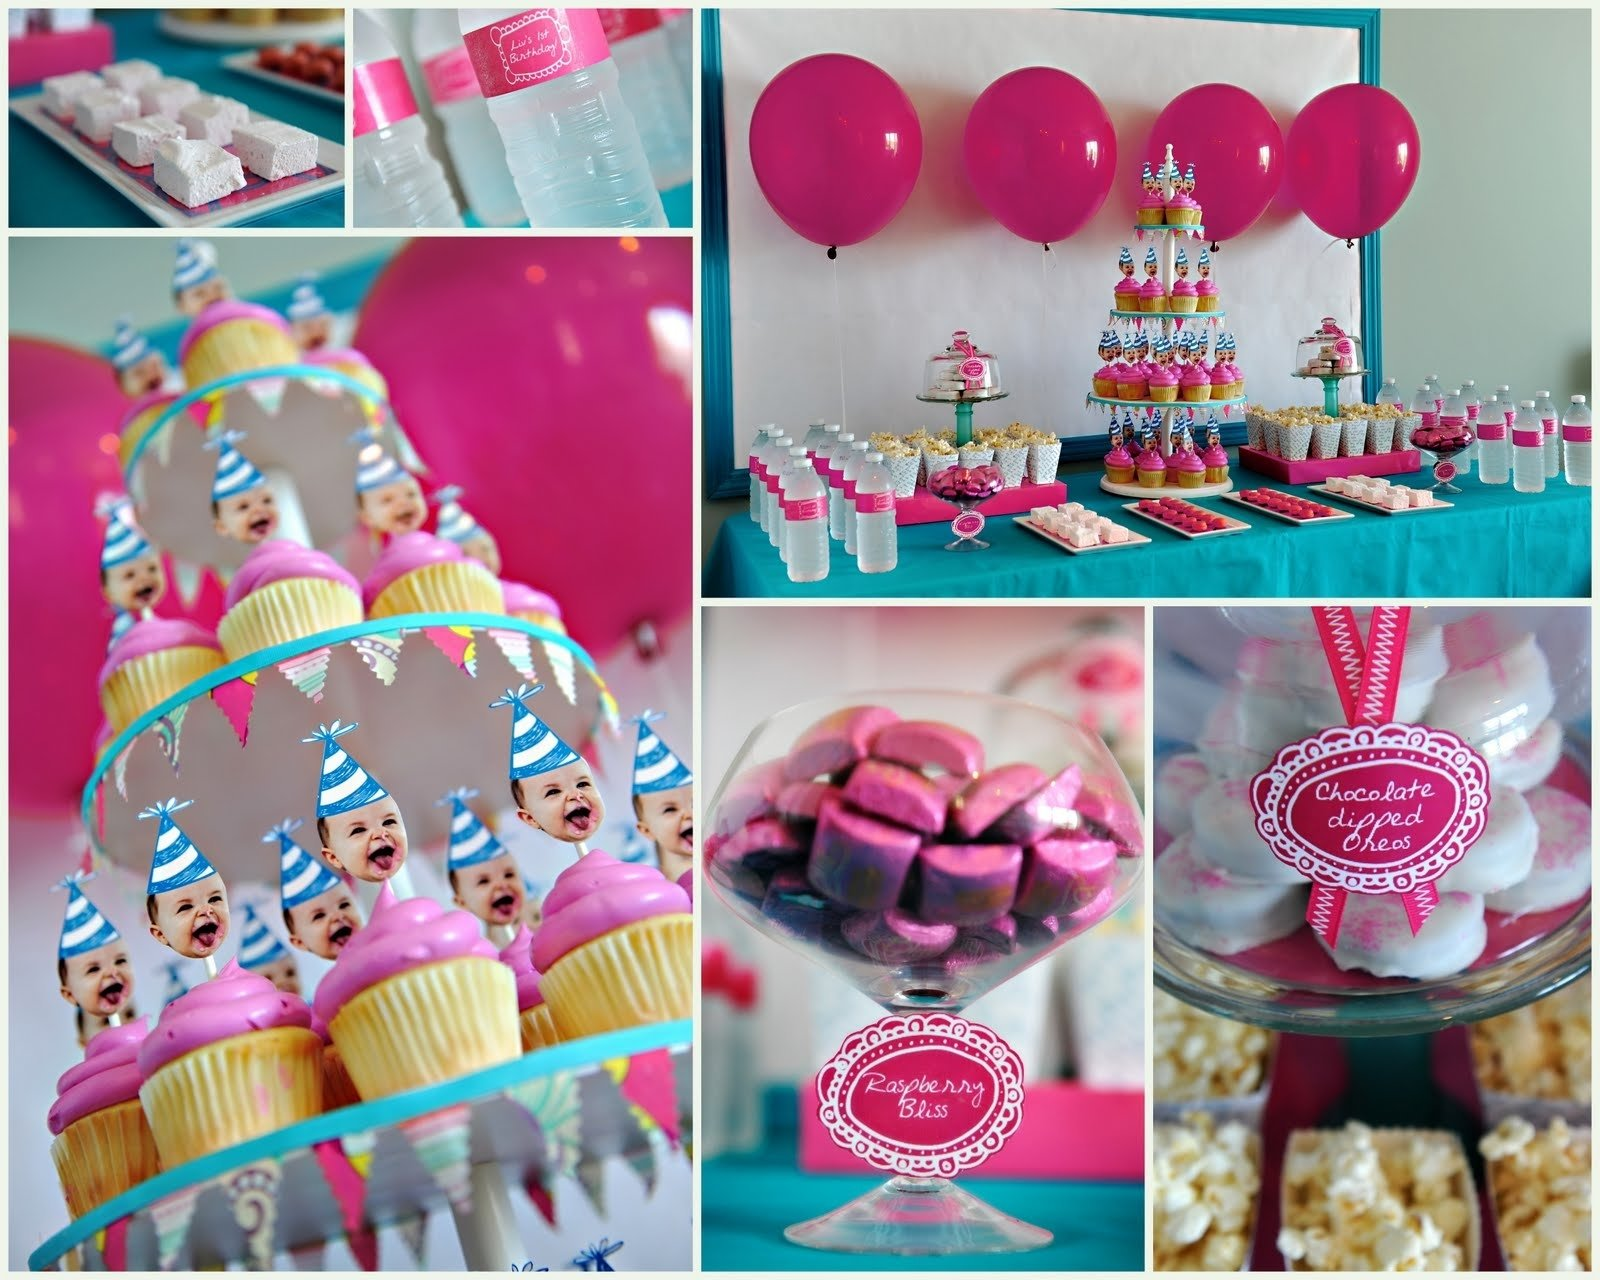 10 Perfect Ideas For 1St Birthday Party birthday party ideas with balloon and cupcake lets party 11 2020